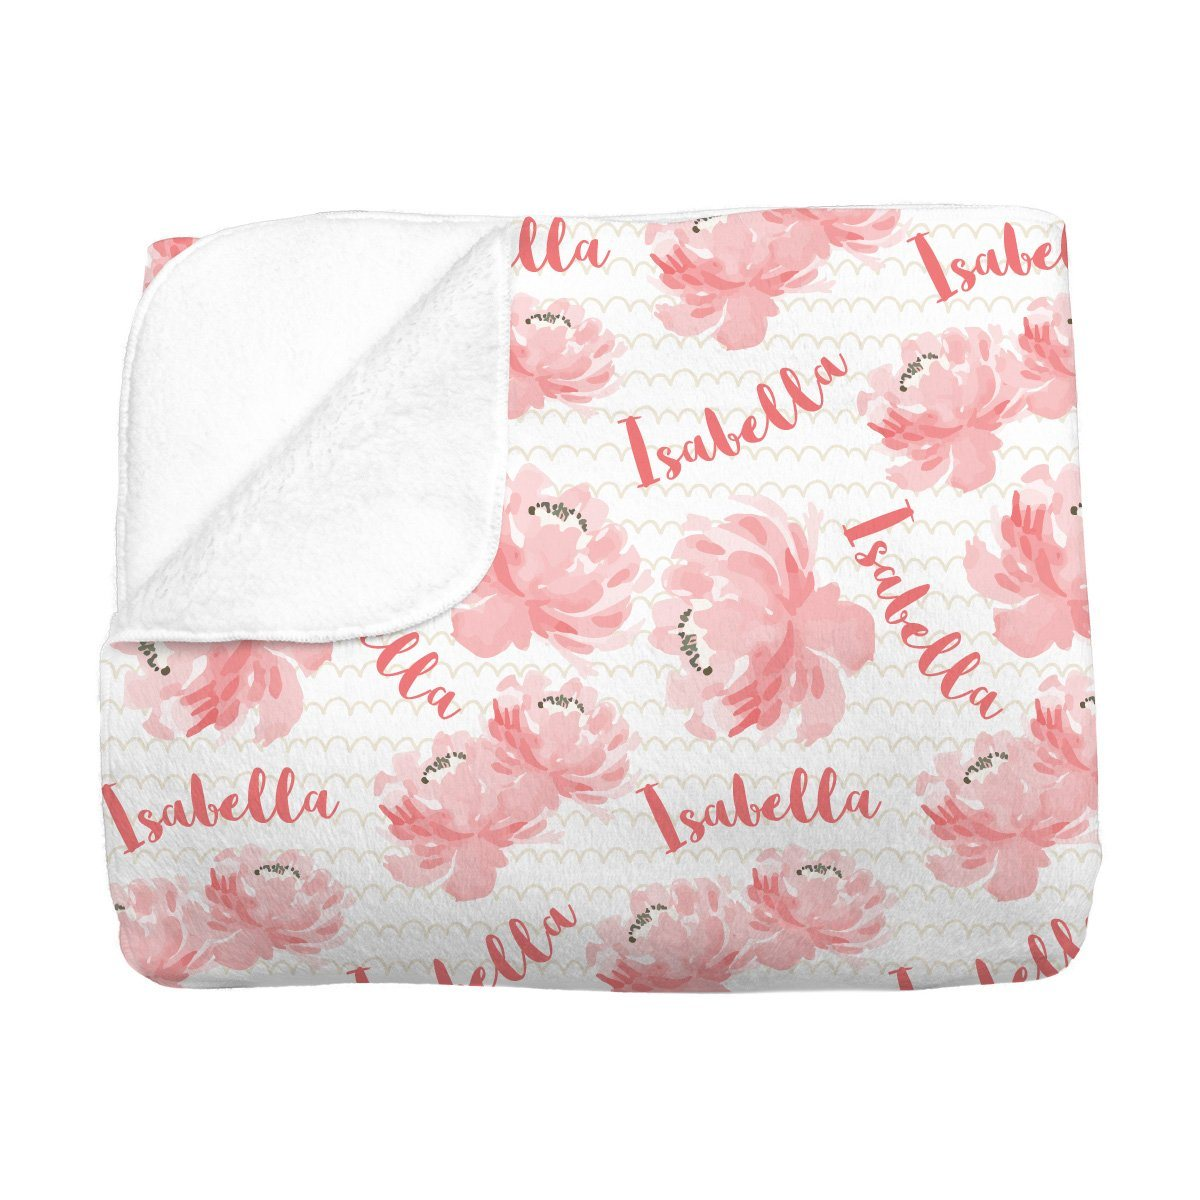 Isabella's Scallops and Peonies | Big Kid Blanket